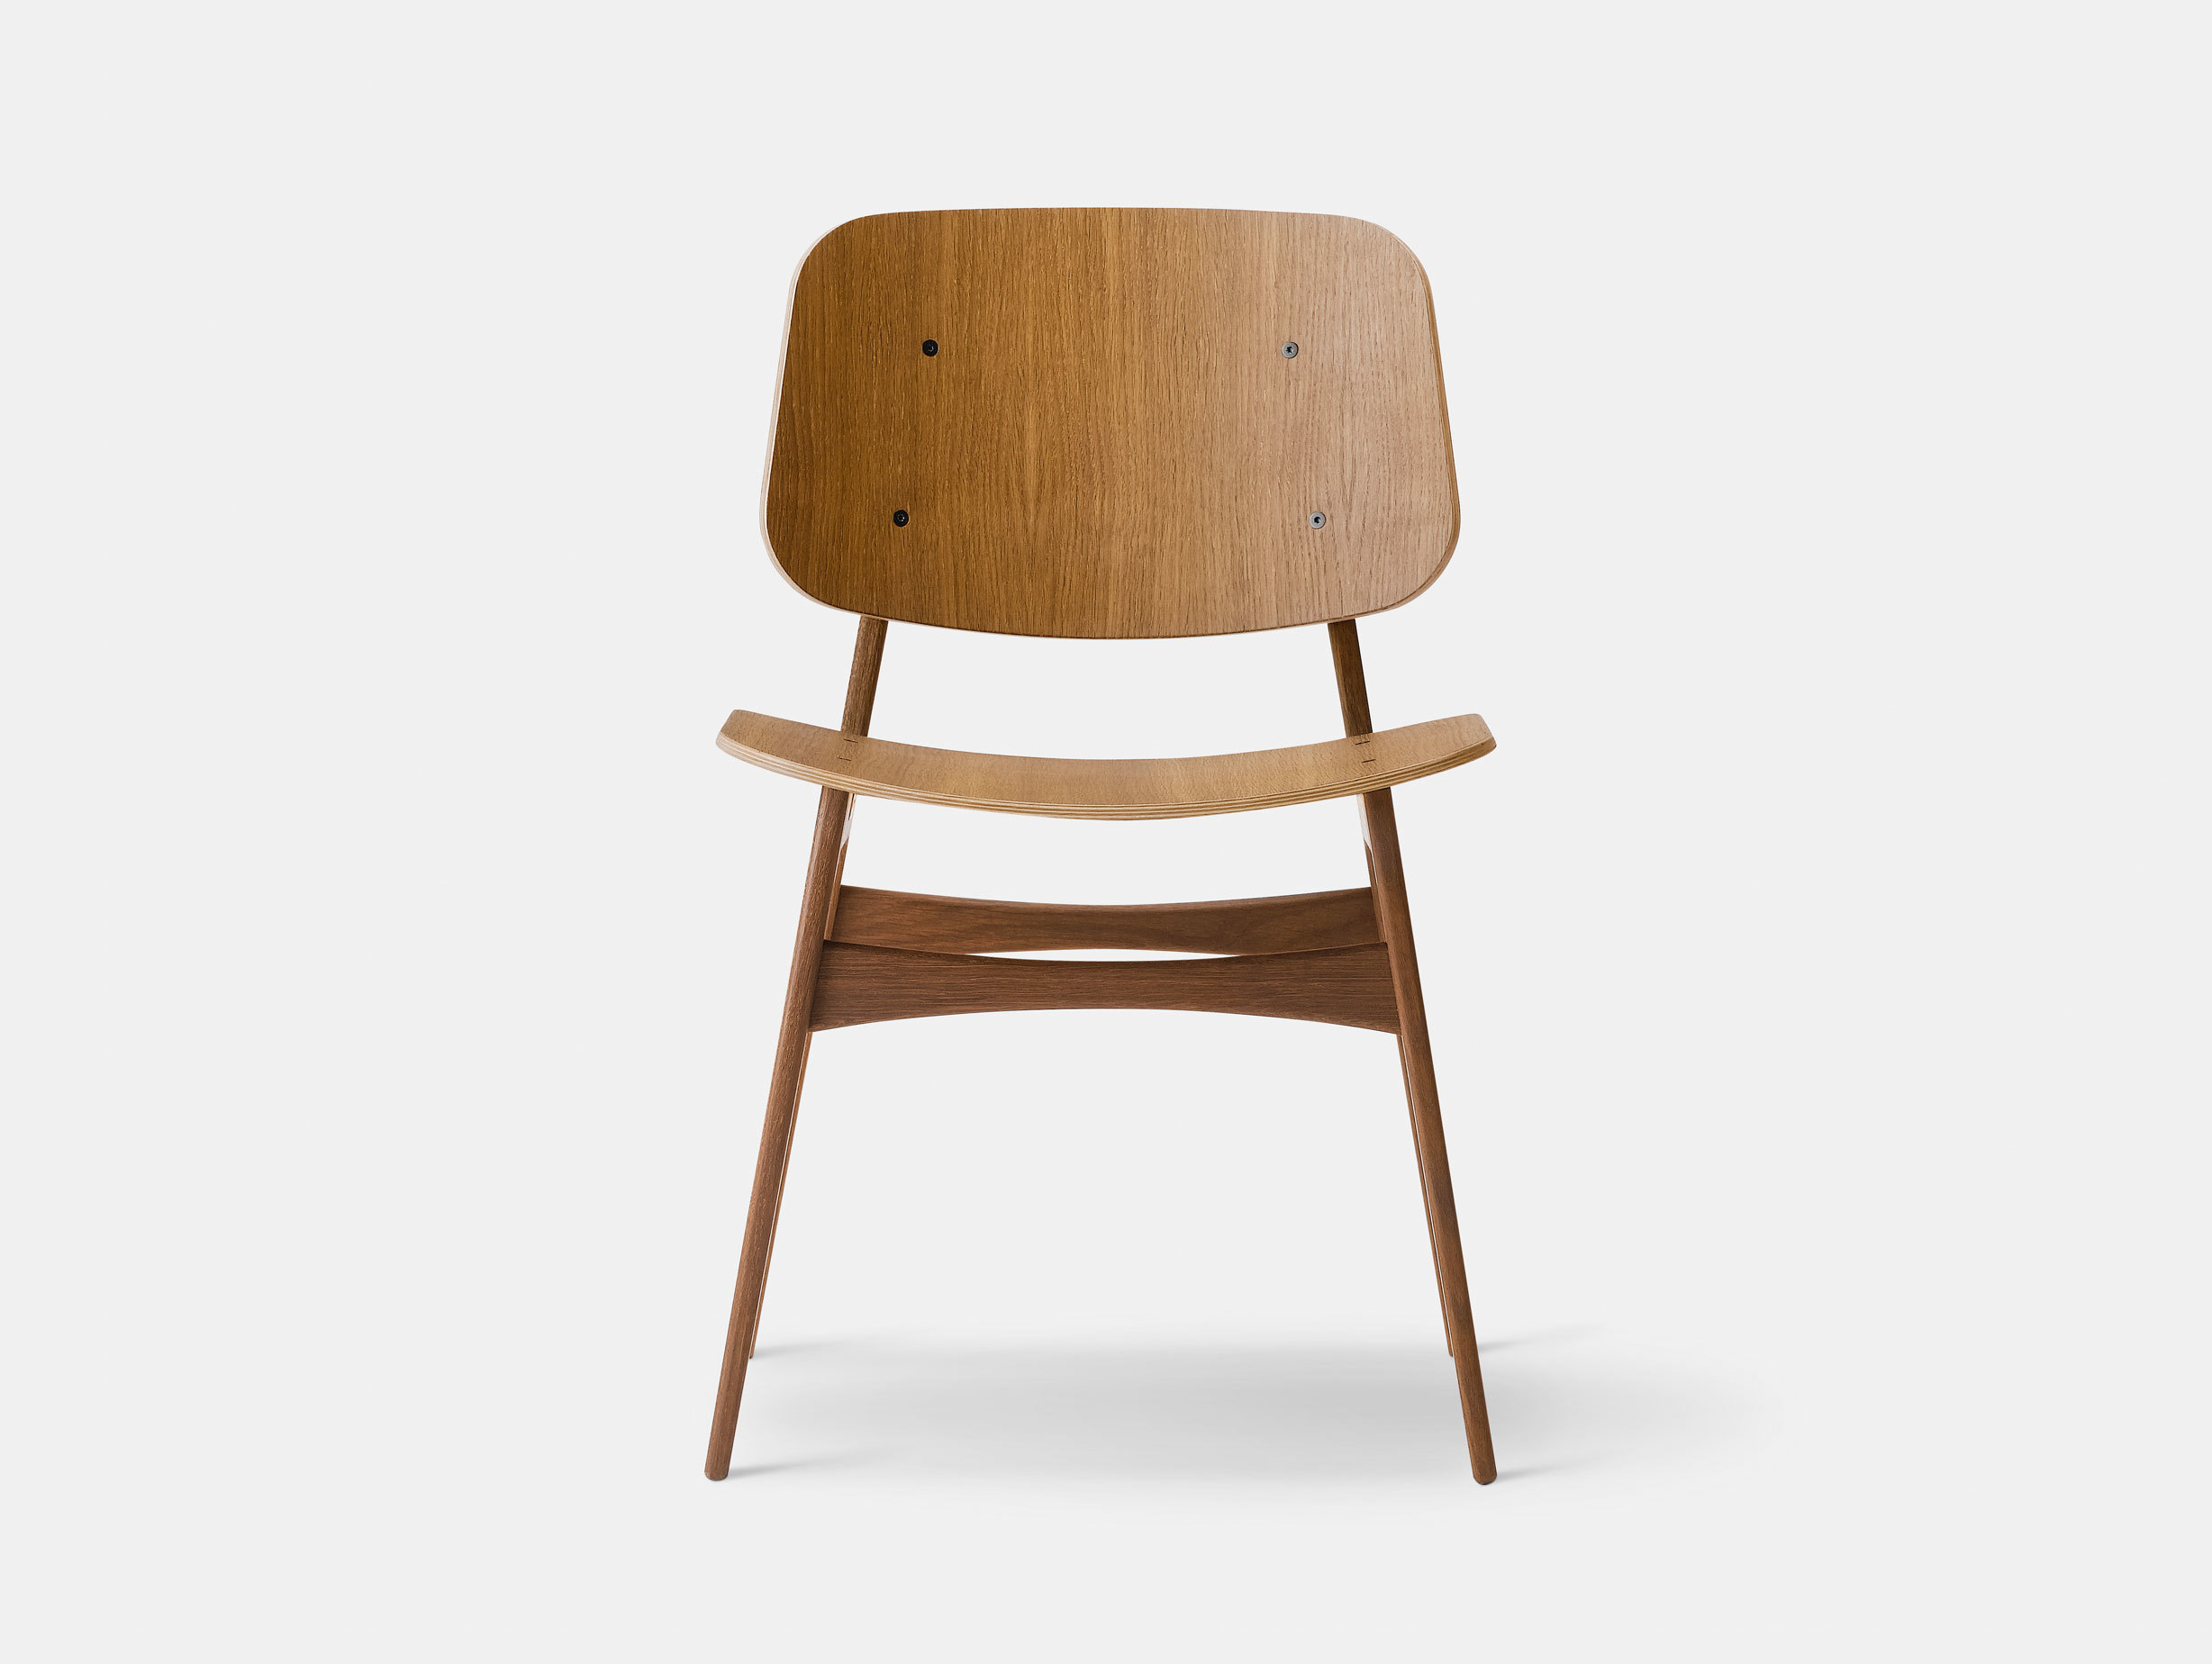 Fredericia Soborg Chair Wood Base Smoked Oak Borge Mogensen